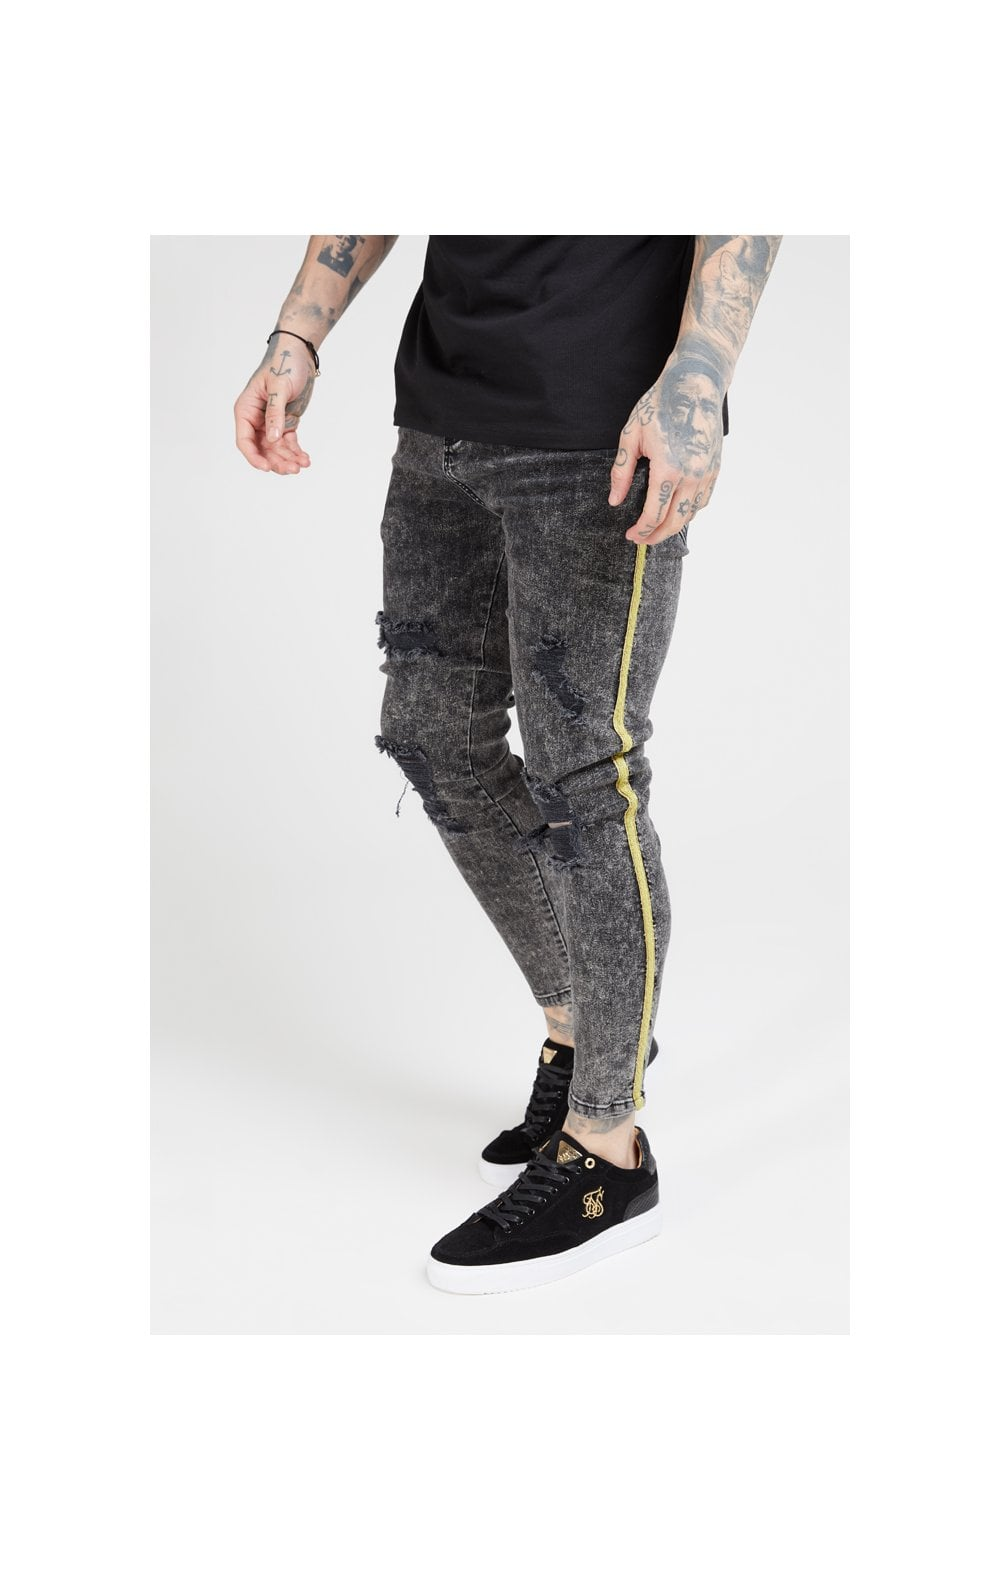 Load image into Gallery viewer, SikSilk Distressed Skinny Taped Denims - Faded Grey (1)